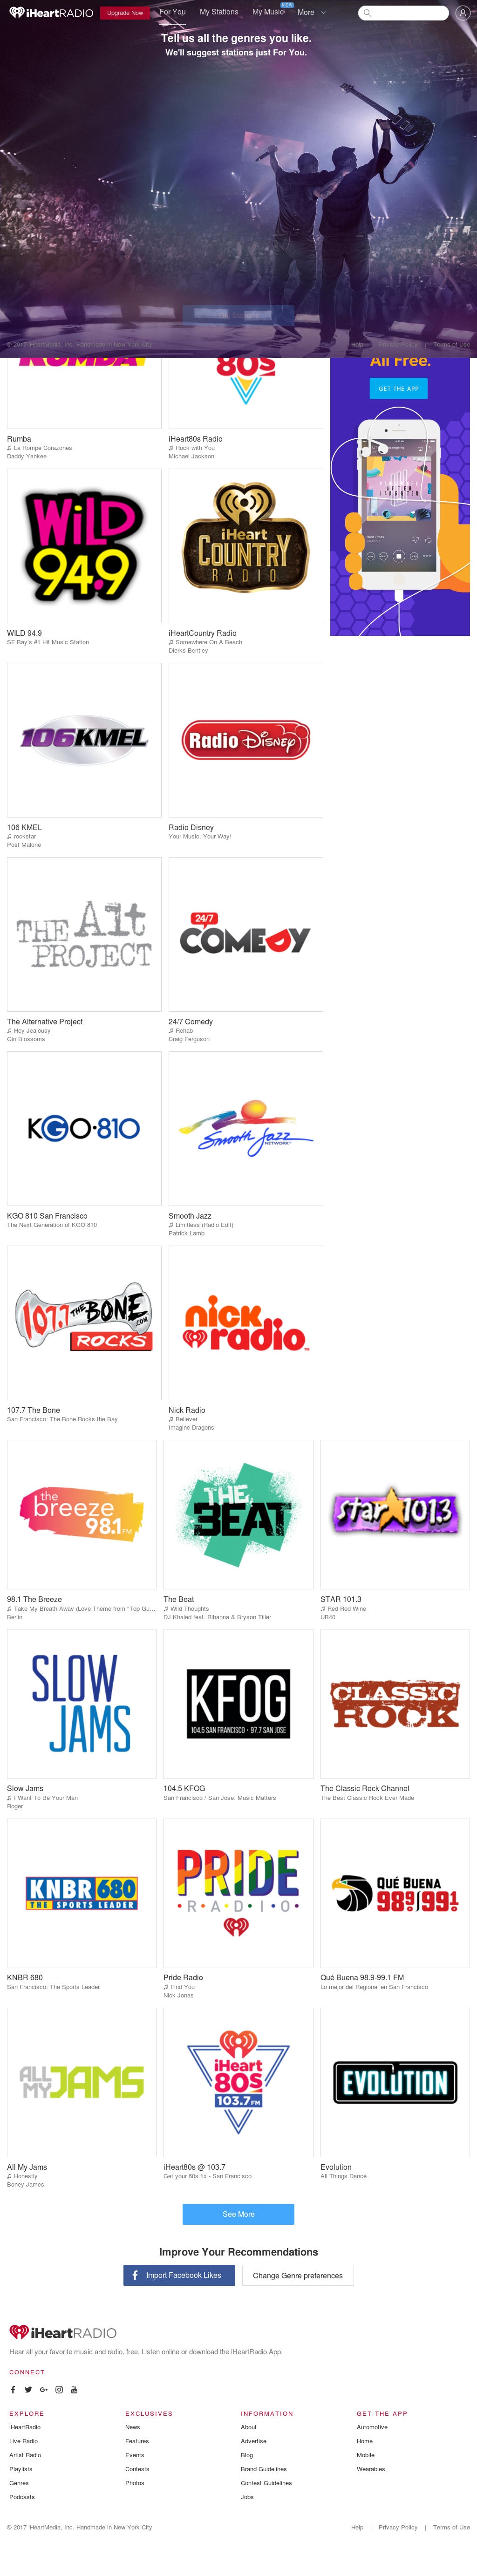 iHeartRadio Competitors, Revenue and Employees - Owler Company Profile